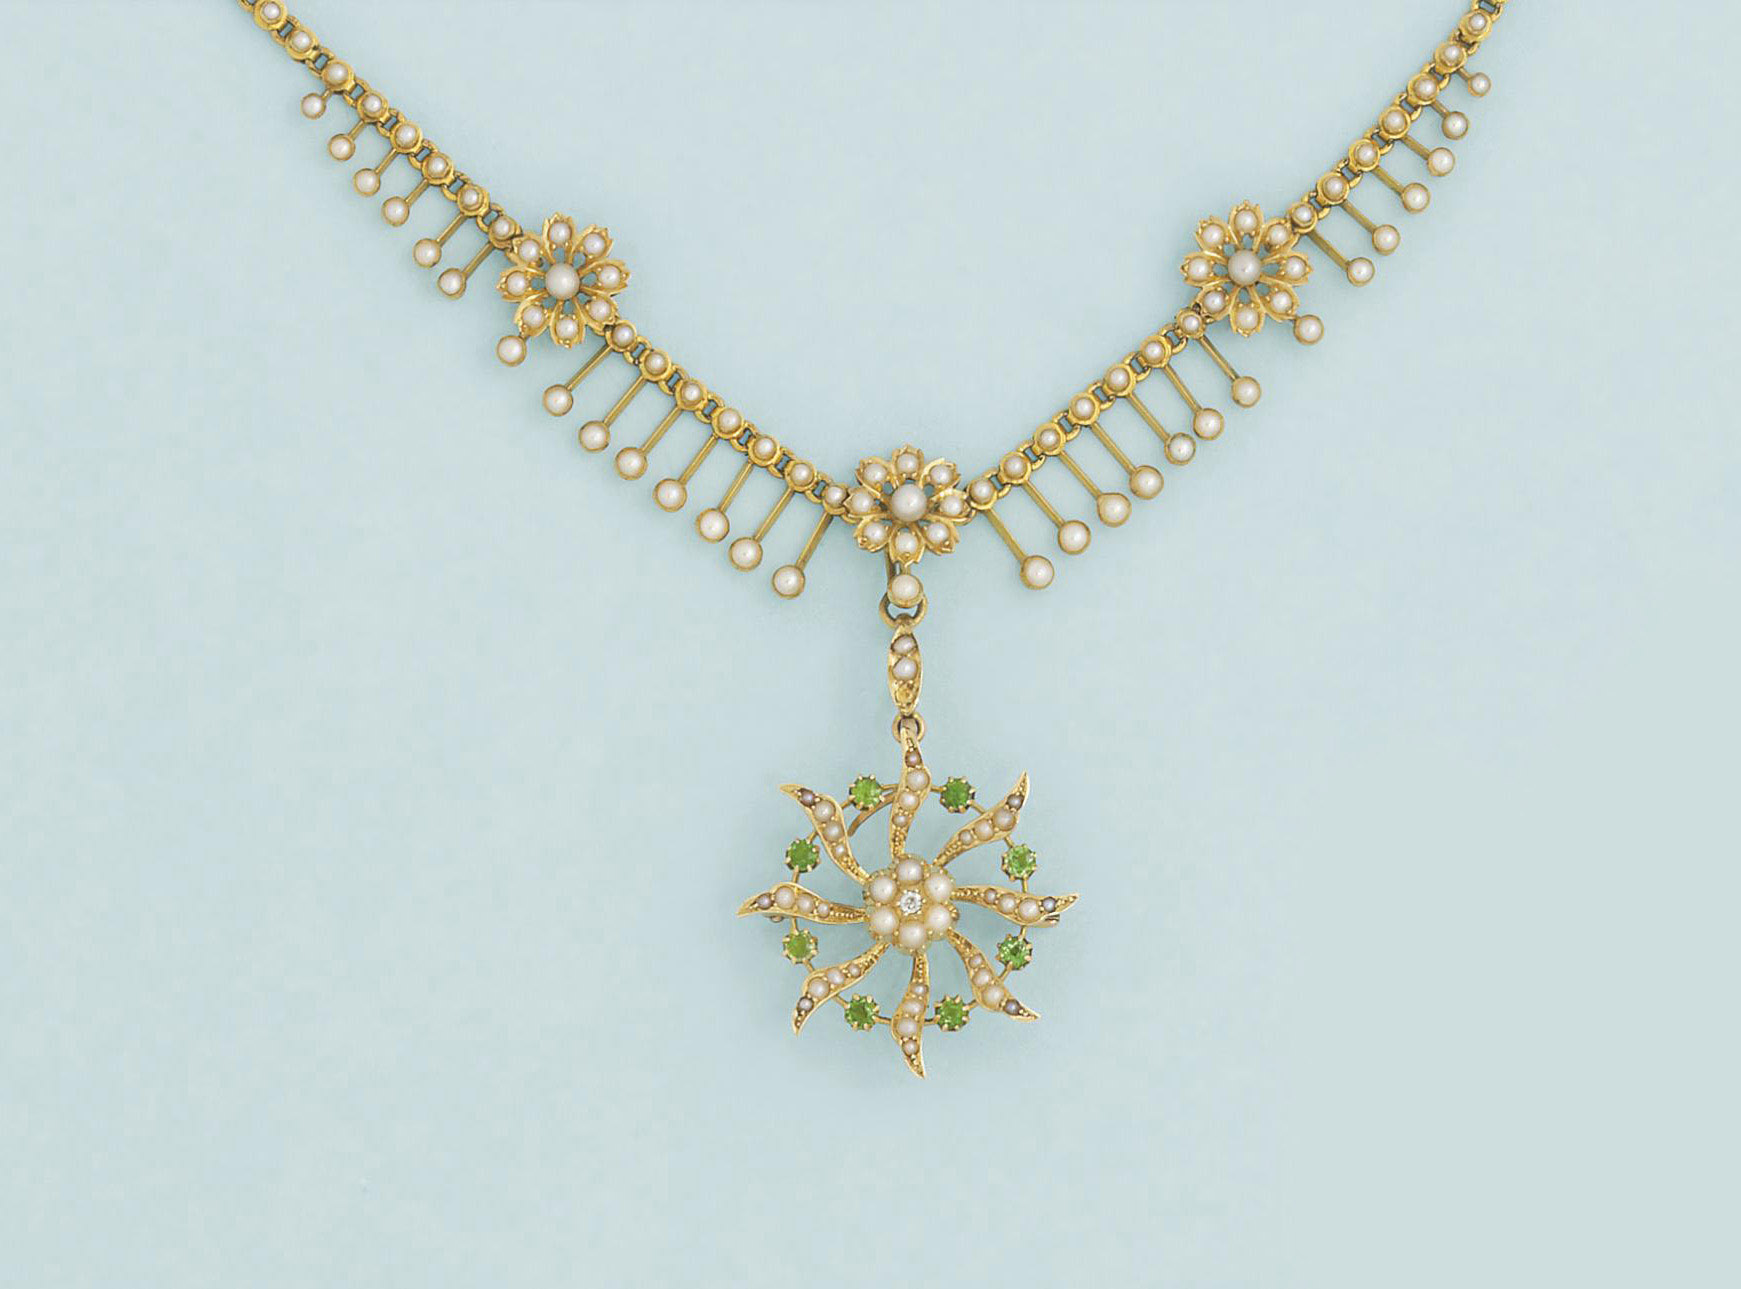 An Edwardian gold and half-pea